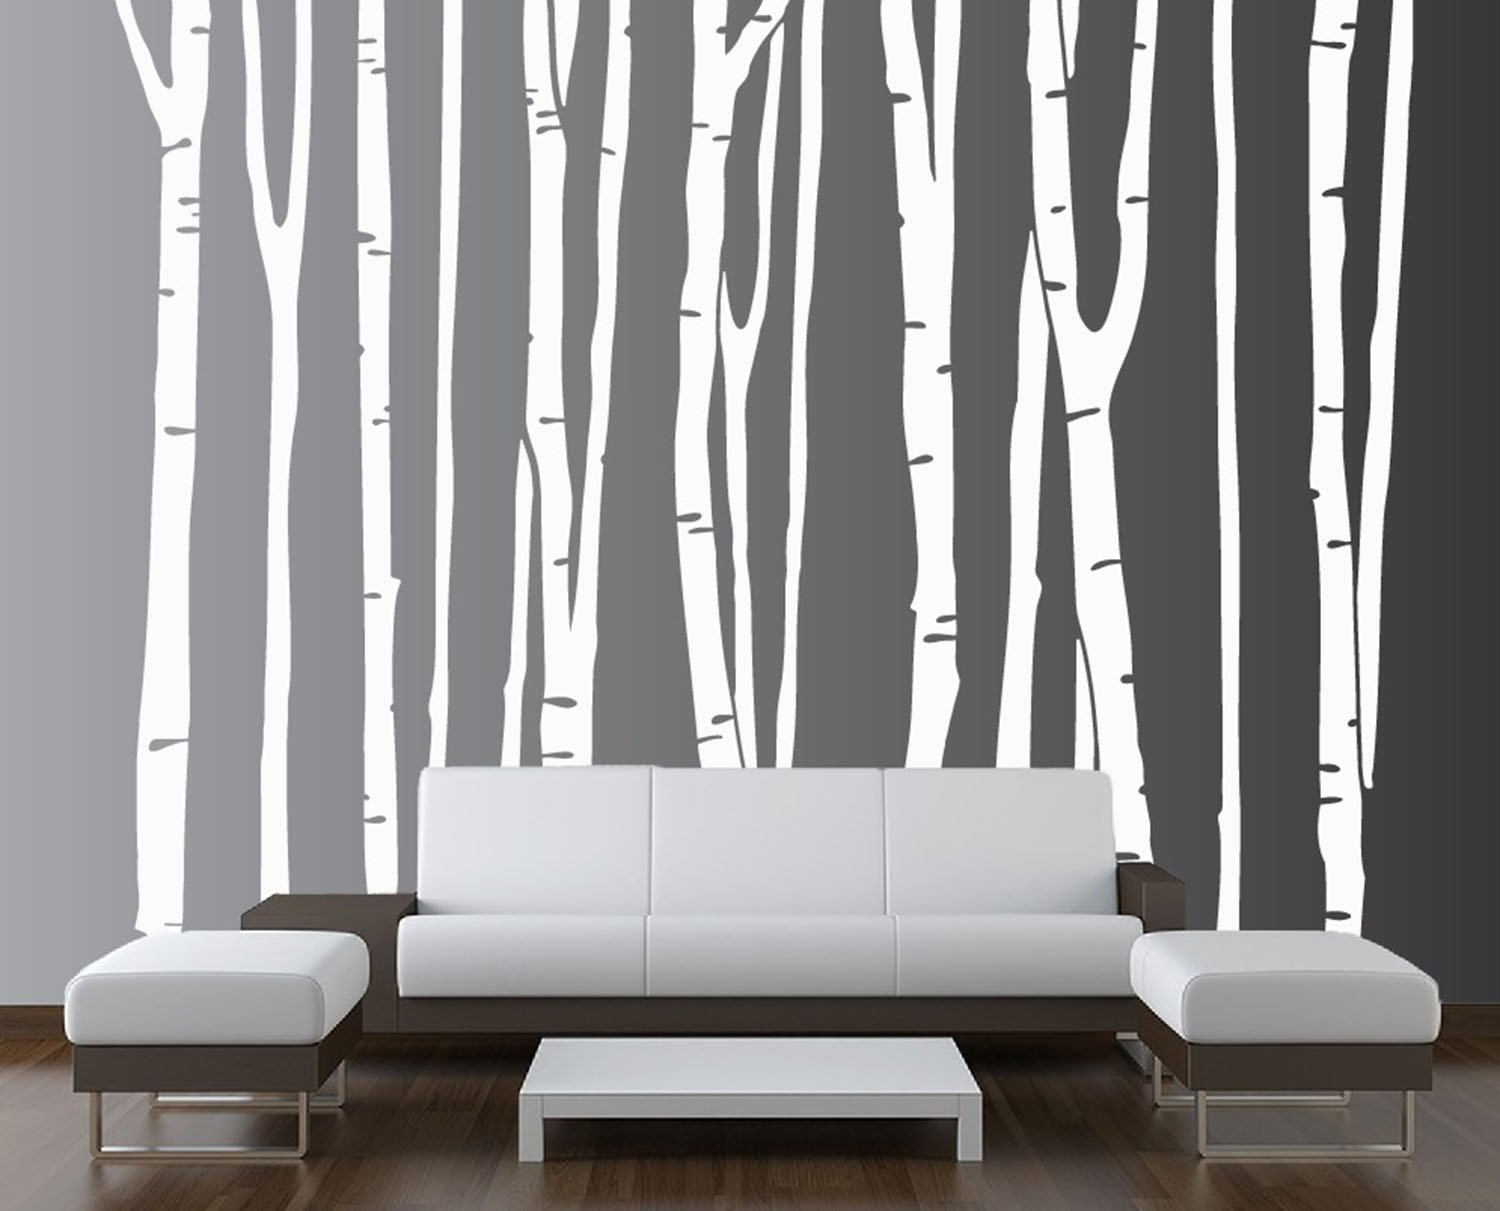 Design Tree Wall Decals innovative stencils 1109 96 white large wall birch tree decal forest kids vinyl removable sticker 9 trees amazon com